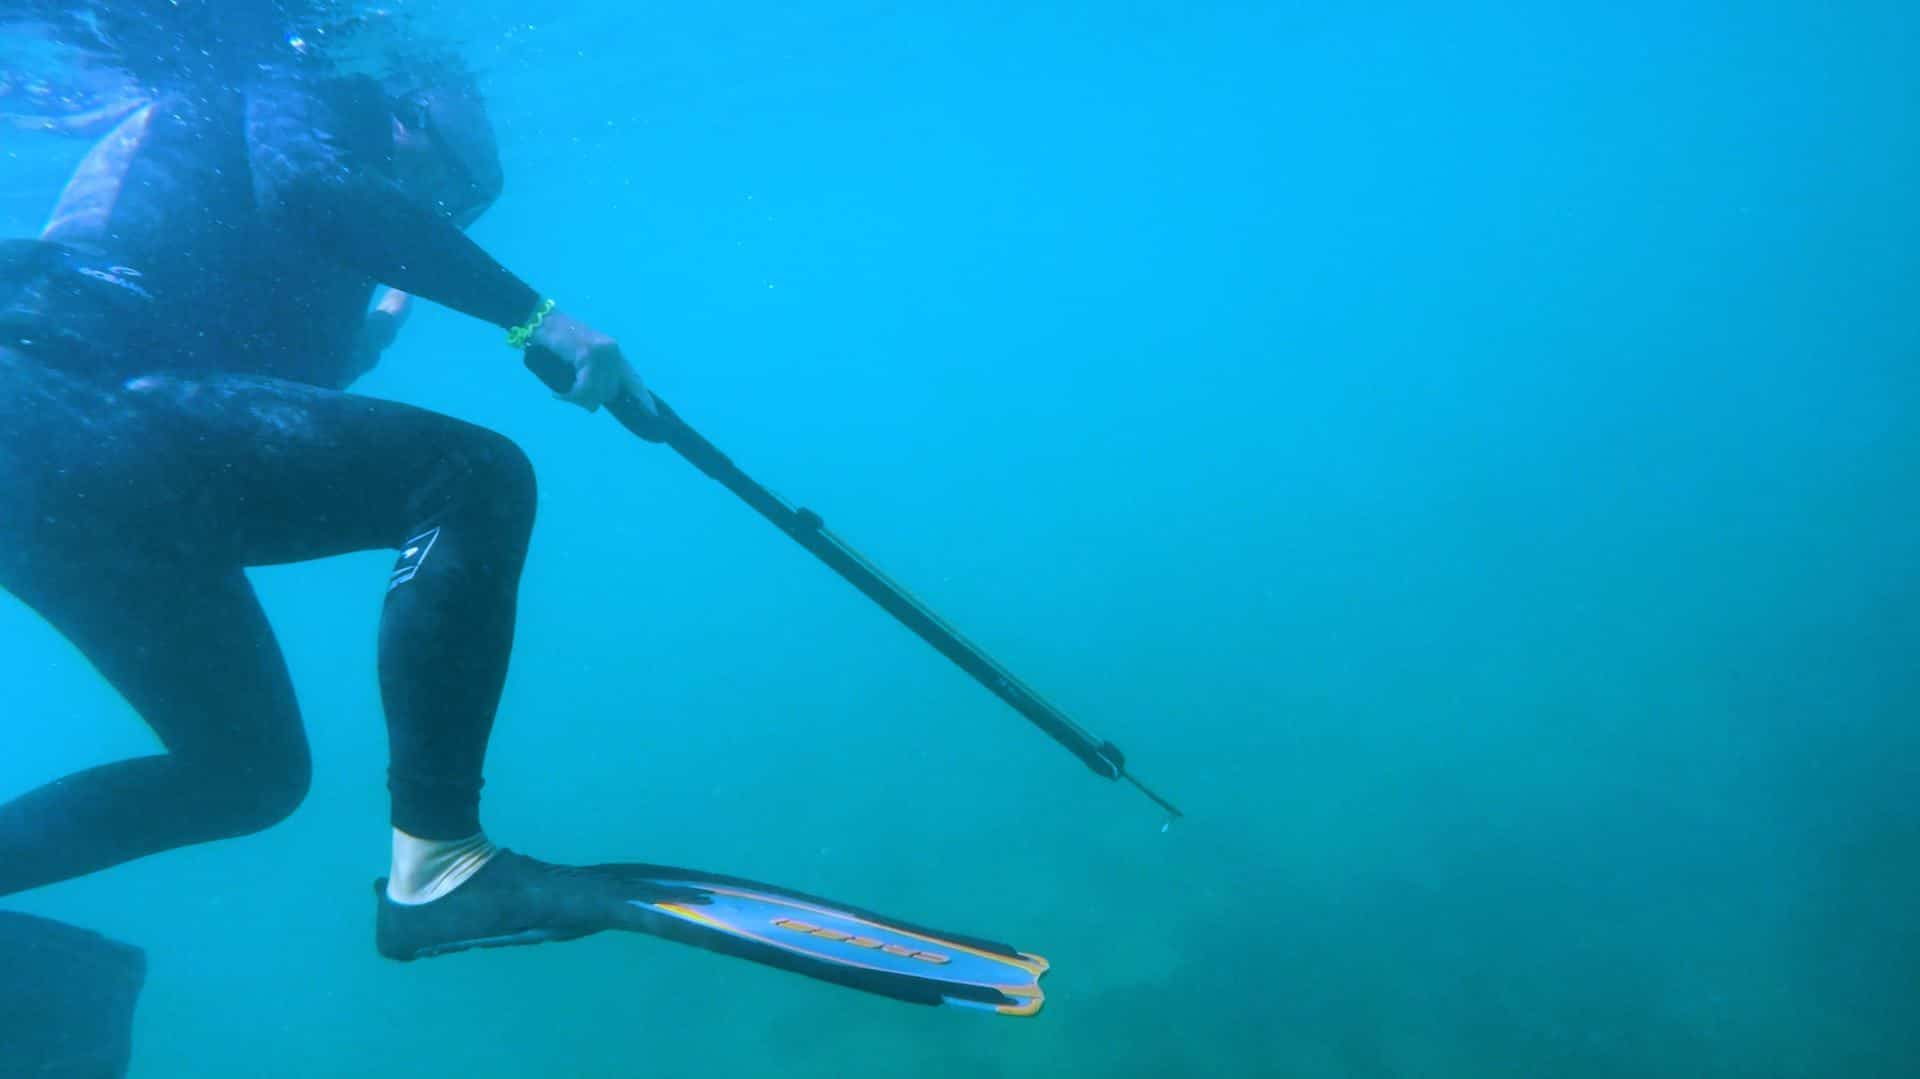 spearfishing underwater shallow water blackout